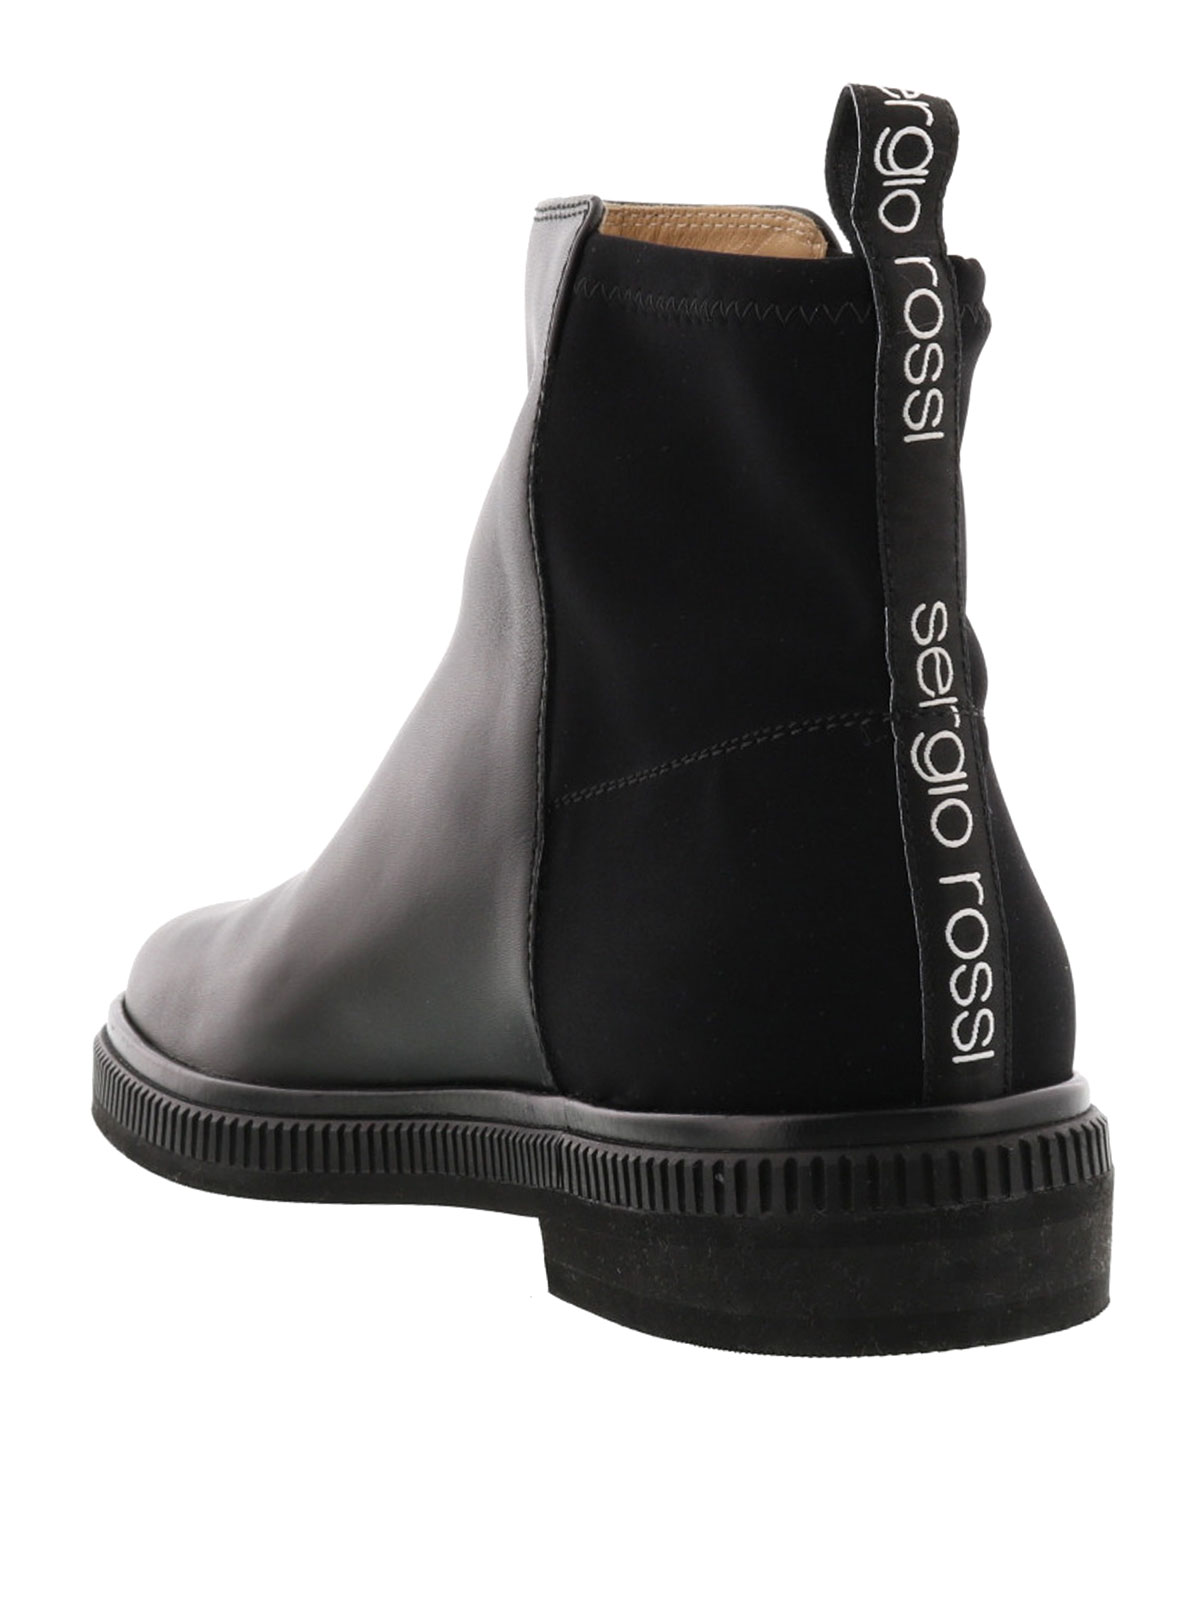 Shopping for Cheap Ankle Boots at MAVIRS Store and more from women ankle boots,ankle boots,shoe us,boots brand,brand boots,platform ankle boots on shopnow-ahoqsxpv.ga,the Leading Trading Marketplace from China.